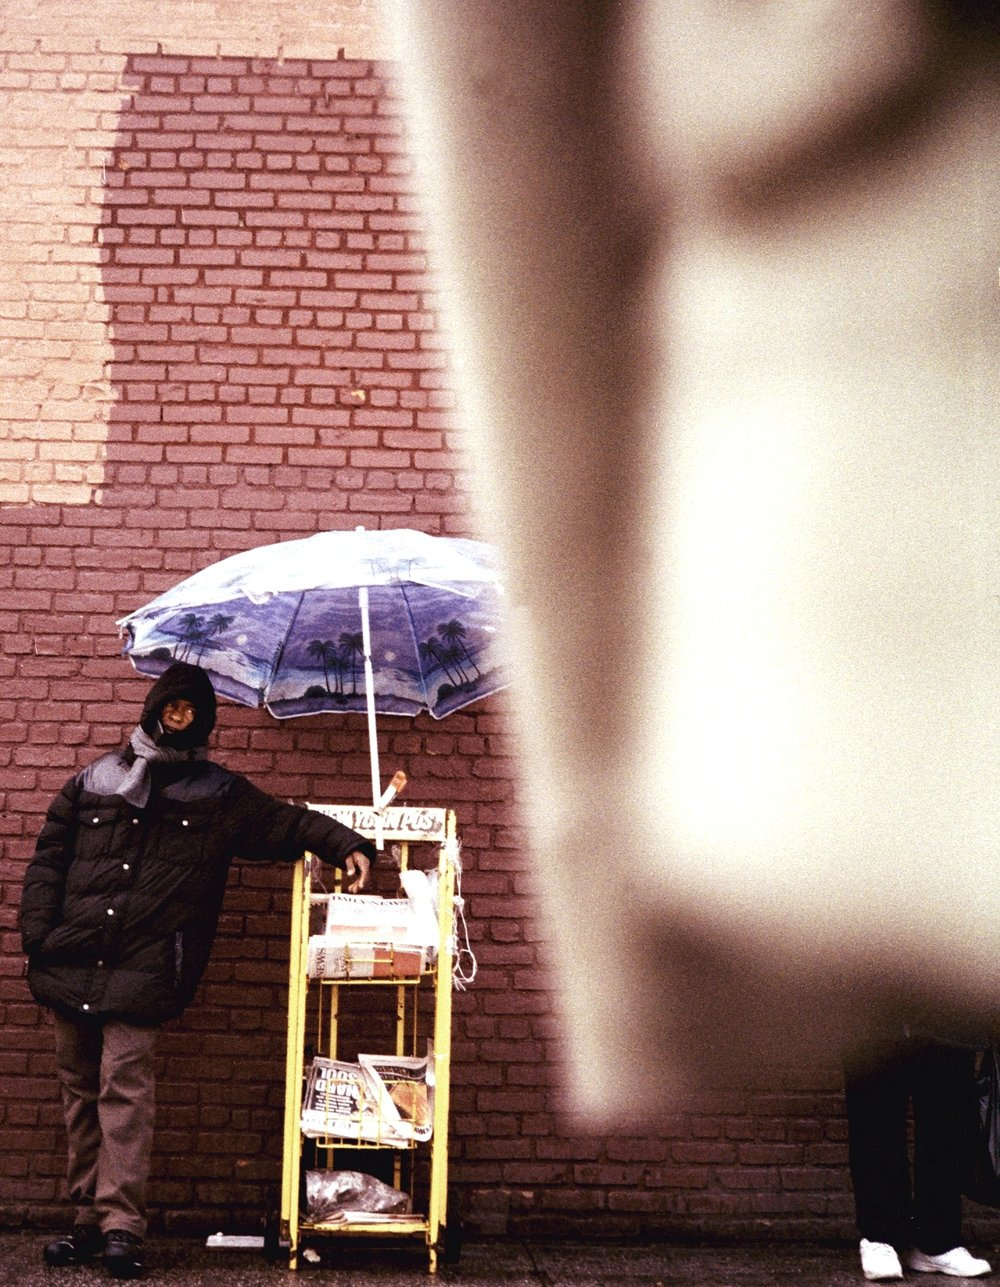 Newspaper vendor. Brooklyn, New York. Photographed on 135 film (35mm). Minolta Hi-Matic